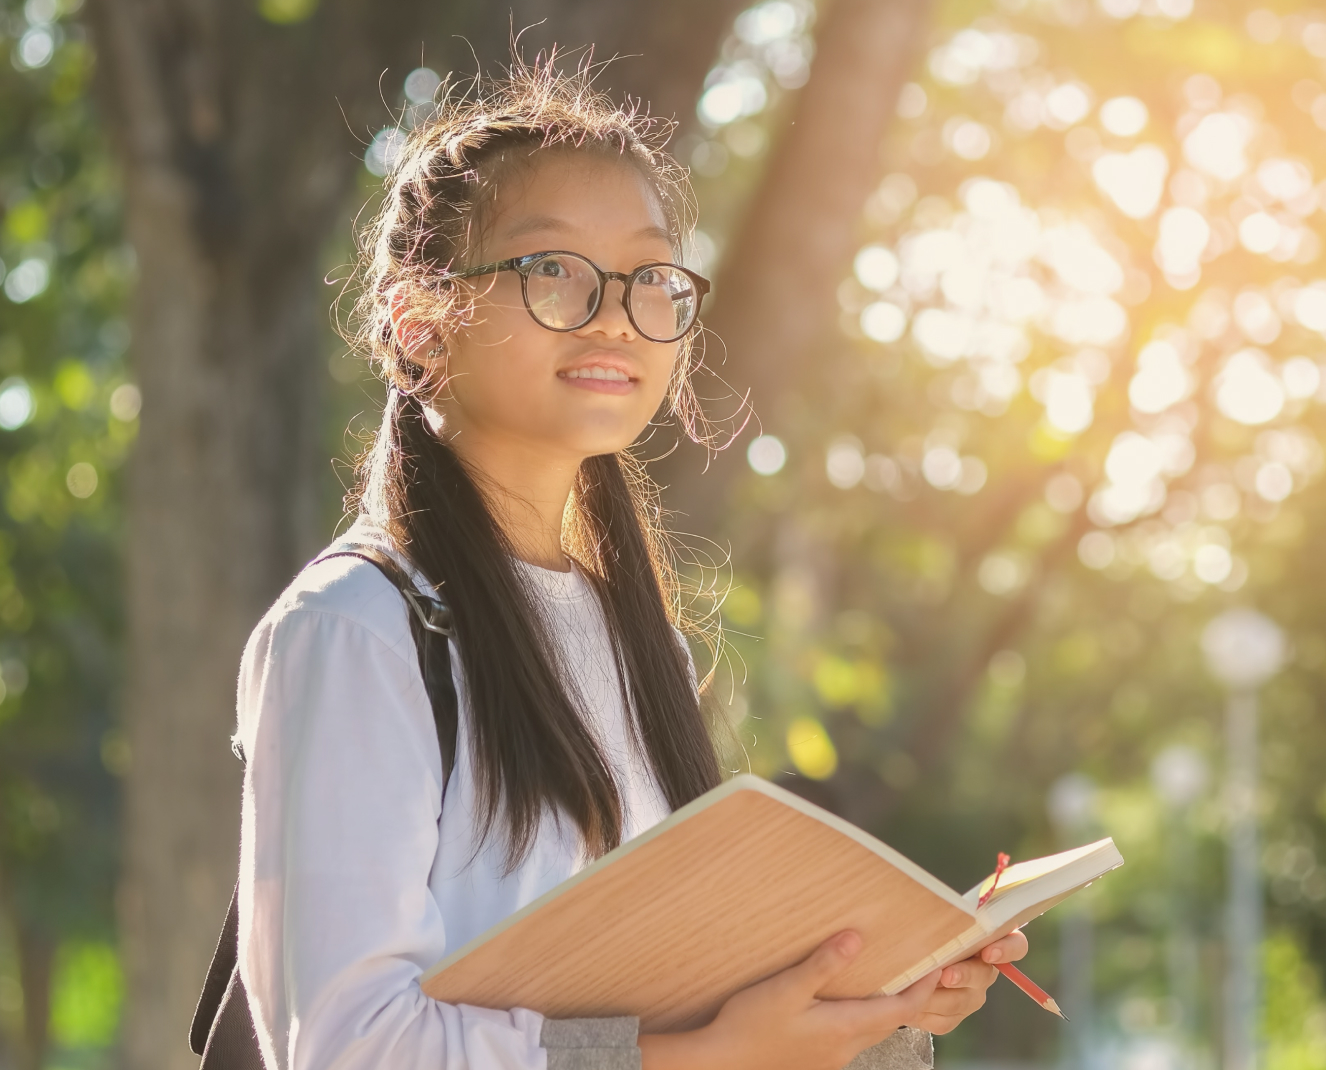 Young girl smiling outdoors with a schoolbook